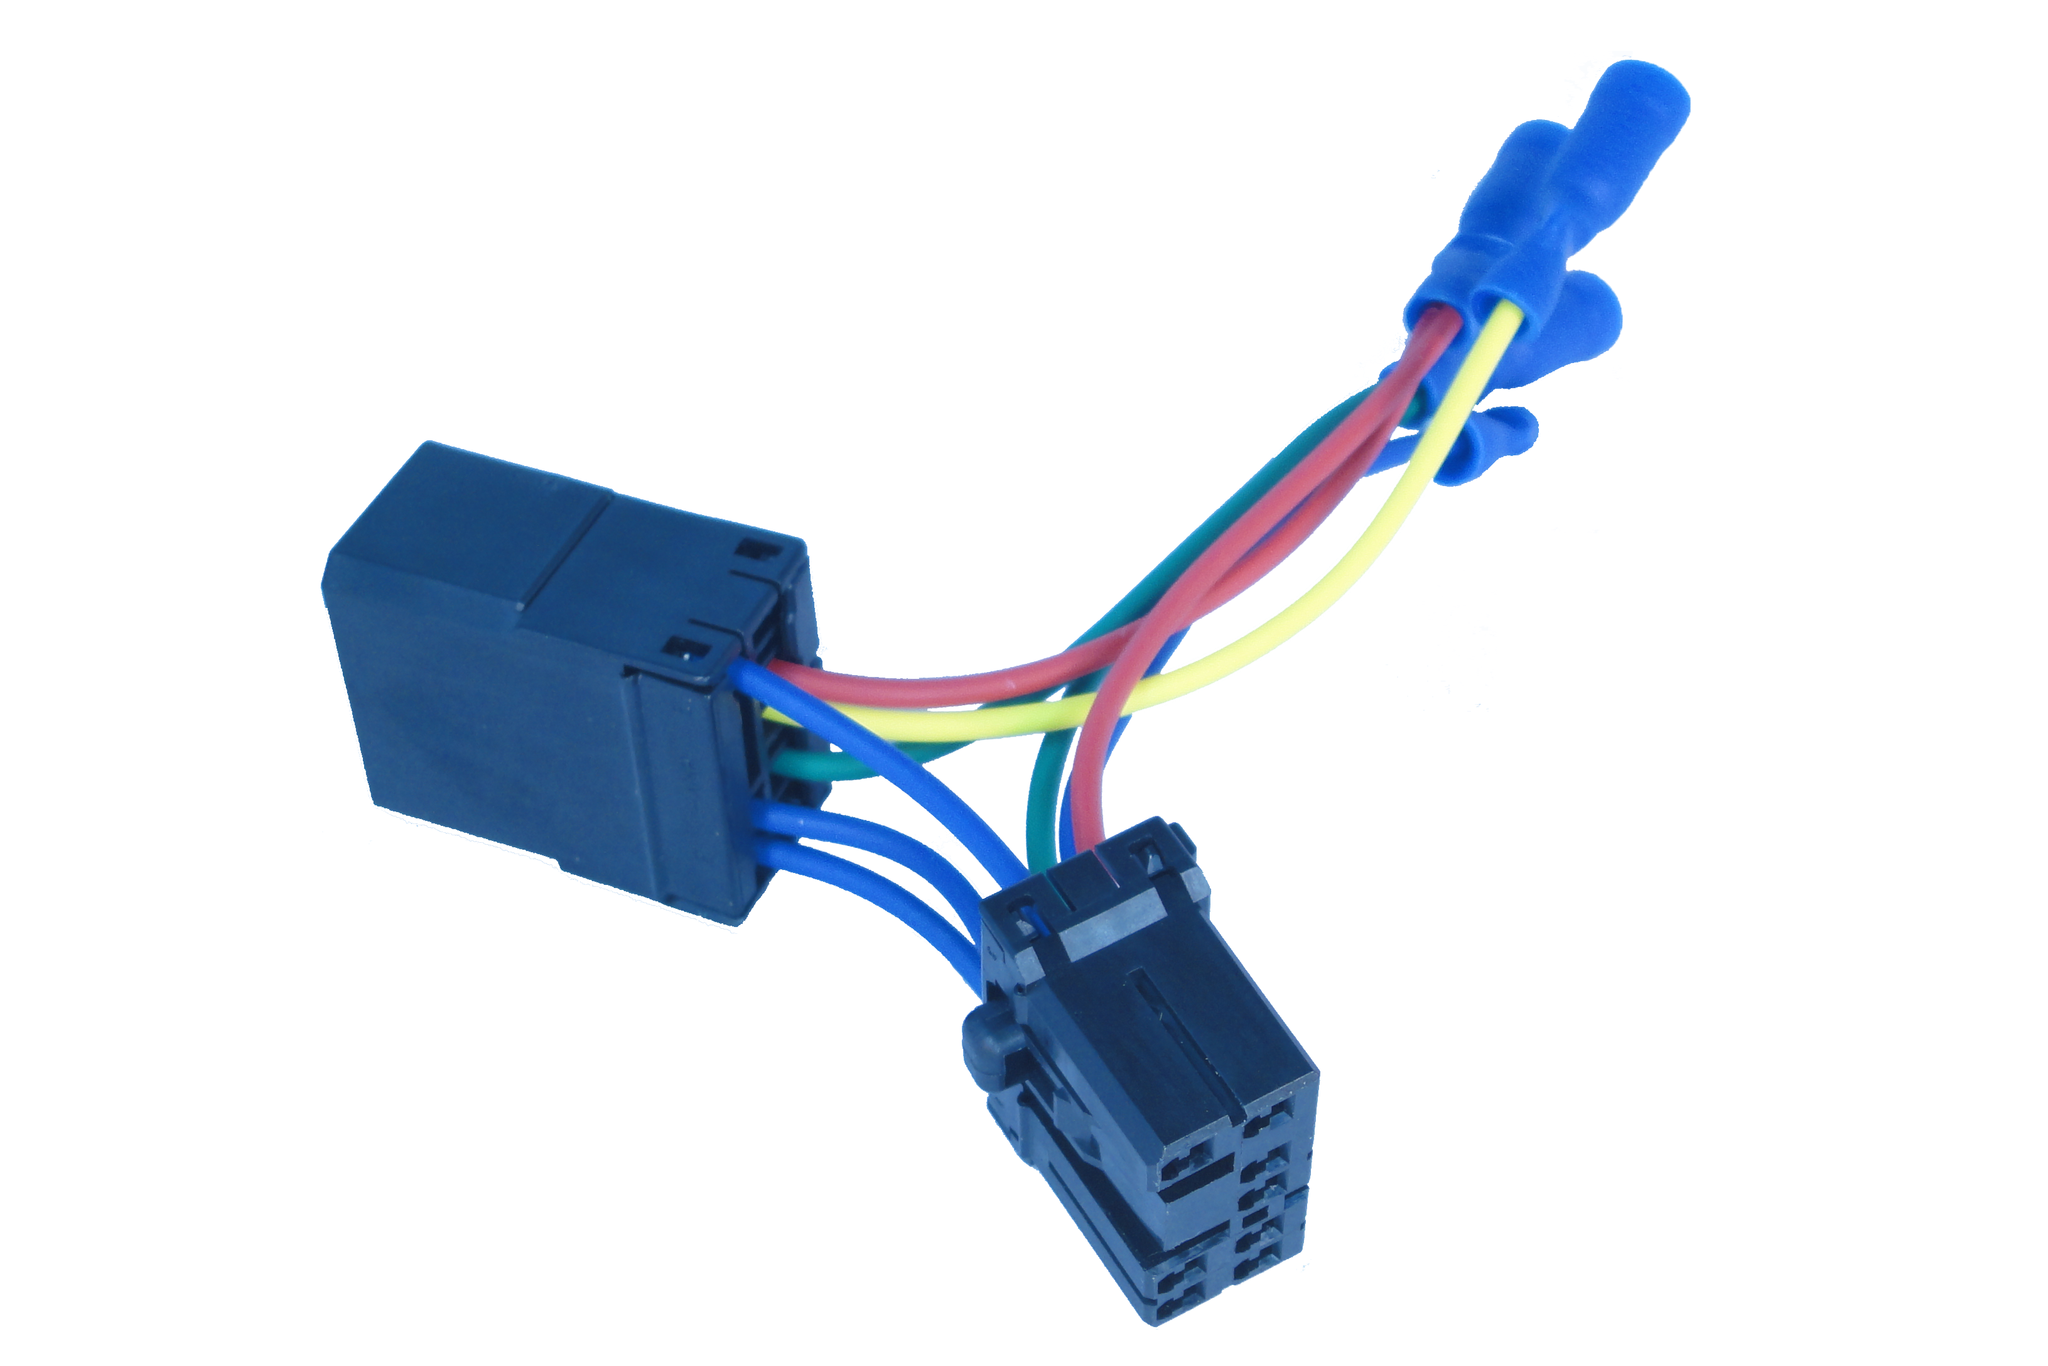 Harley_5371190f 0804 4b11 8809 97c08d18bea7?v=1421347616 gearbrake smart brake light module™ plug and play wiring harness at fashall.co